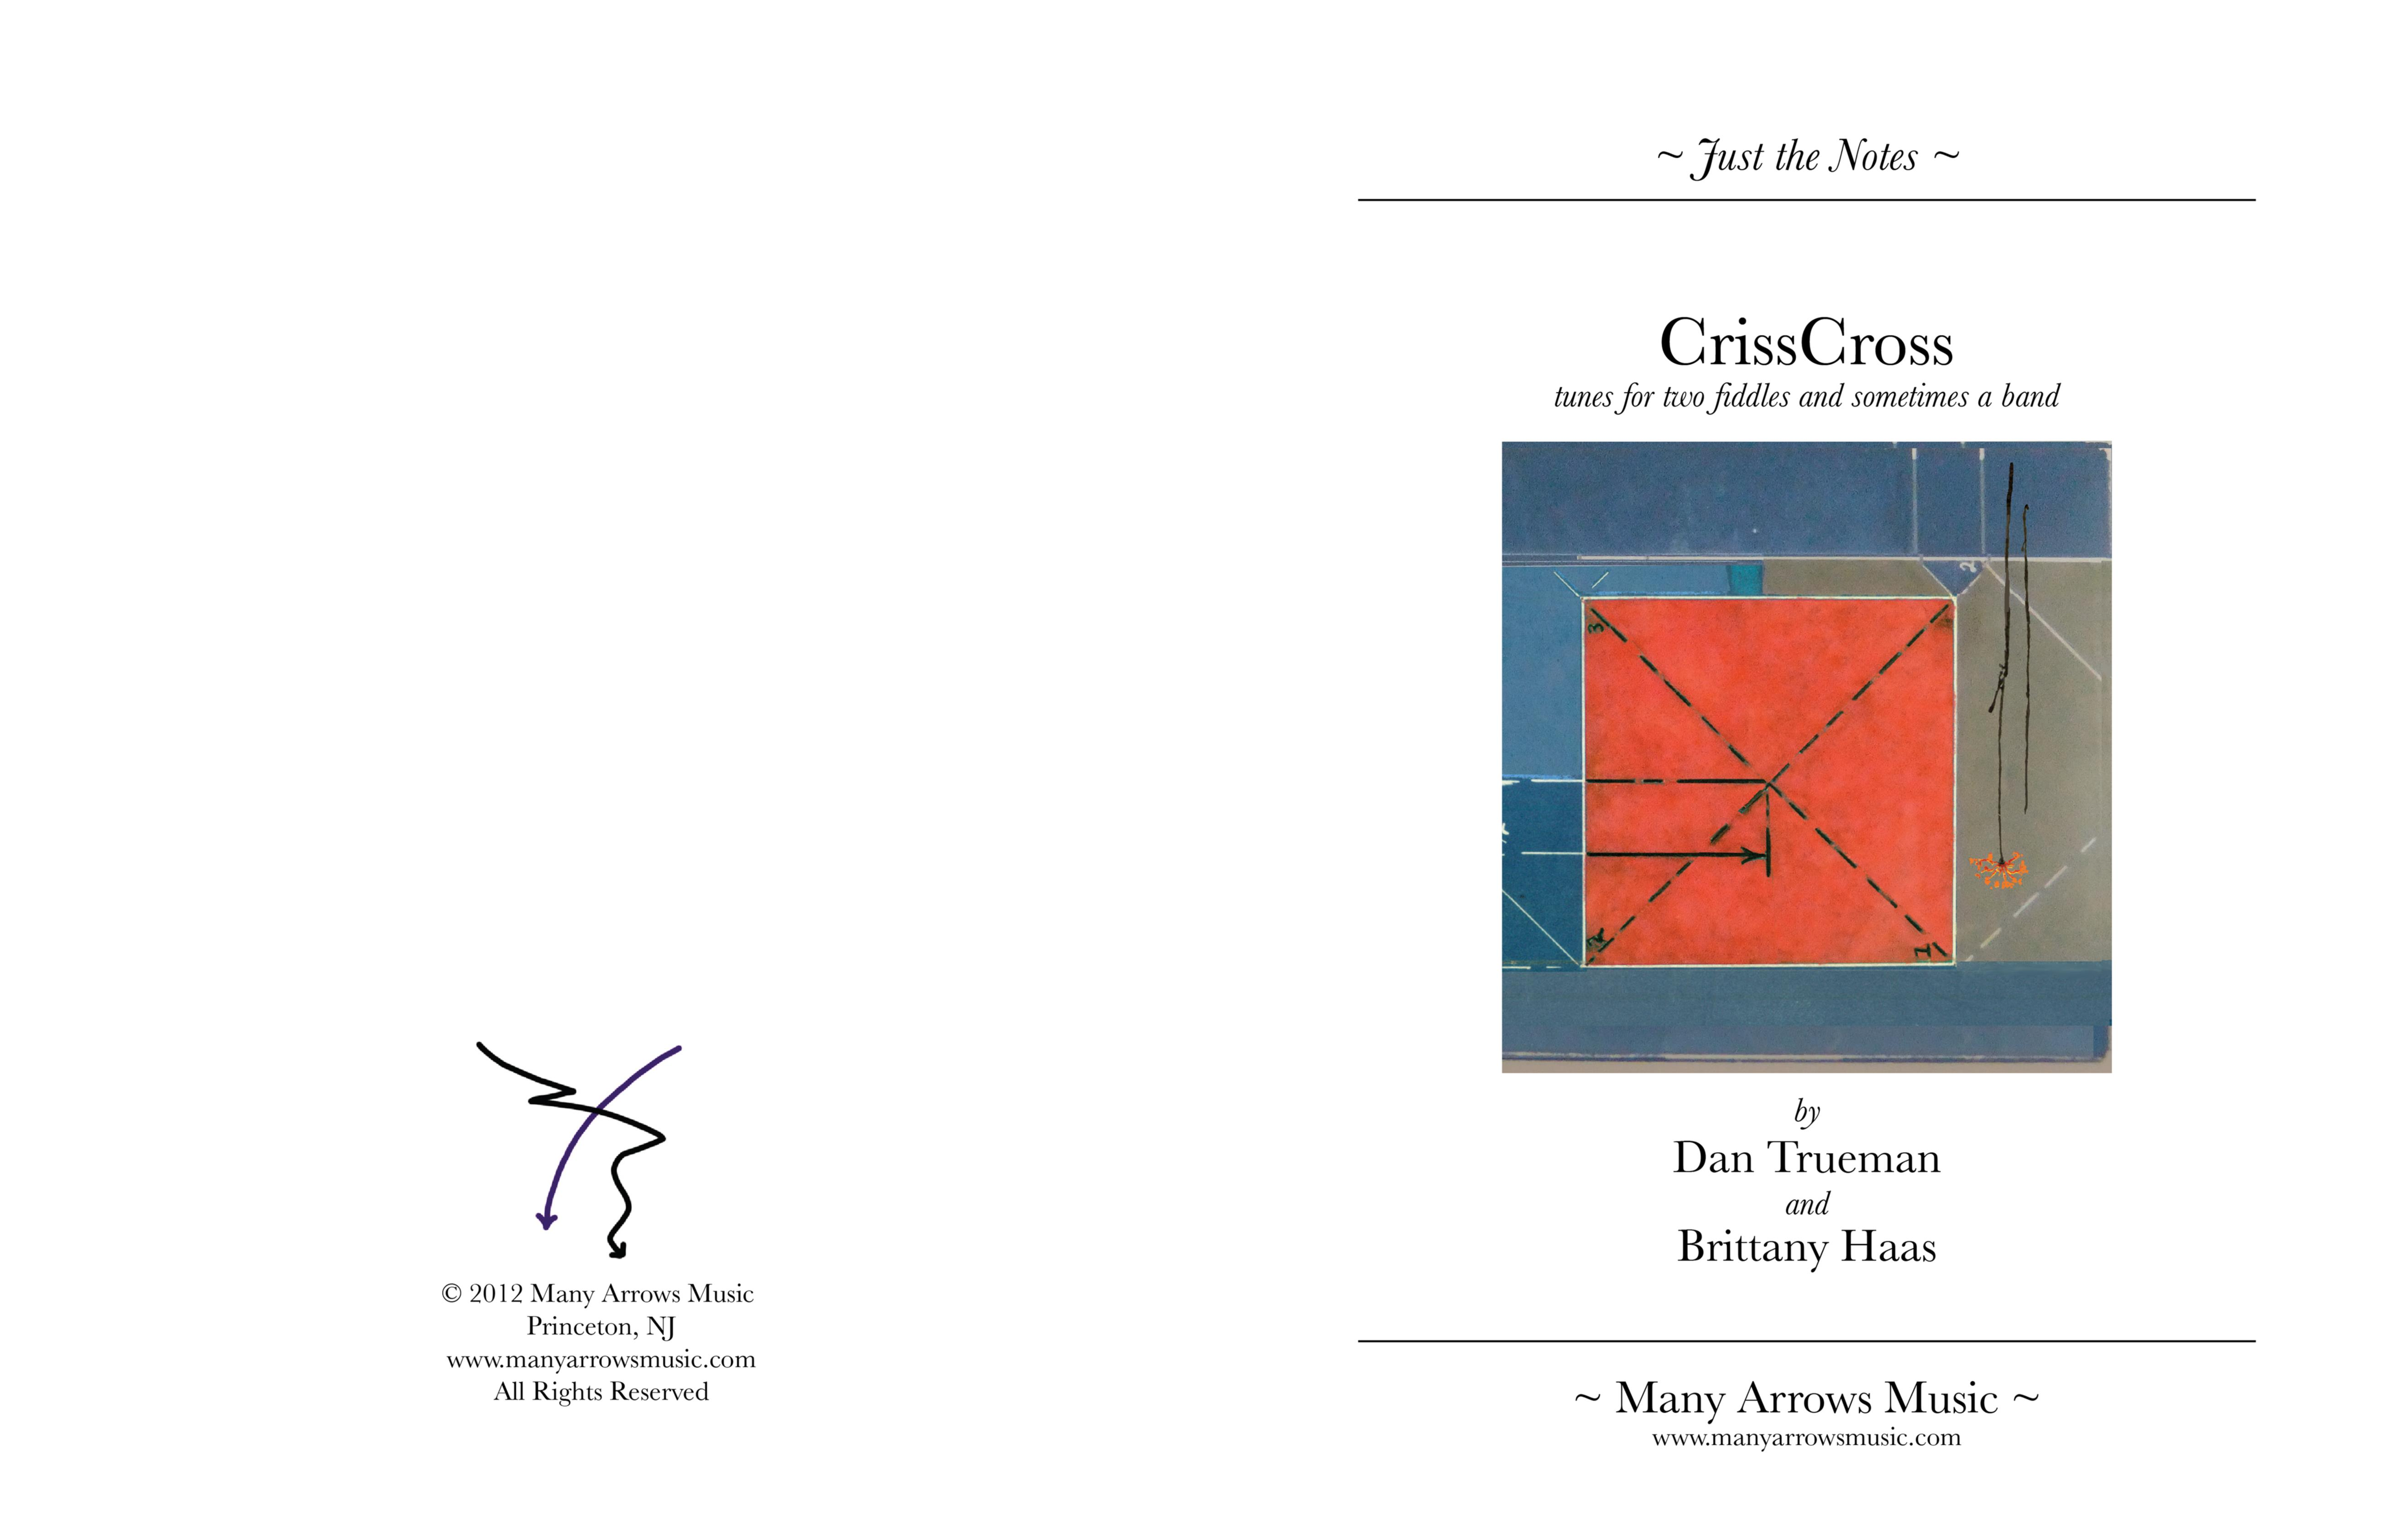 Just the Notes: CrissCross cover image